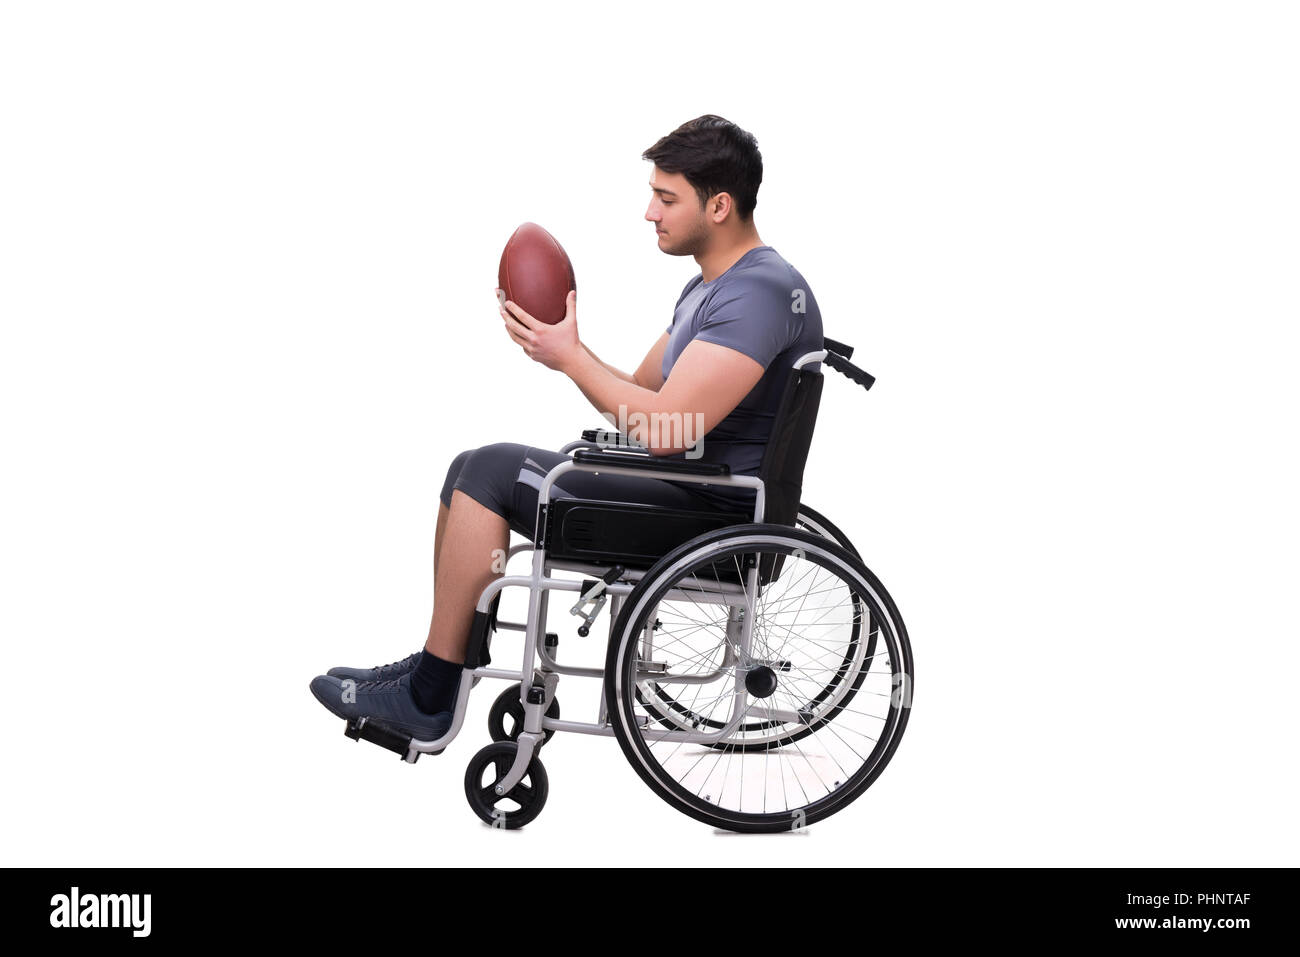 Football player recovering from injury on wheelchair - Stock Image